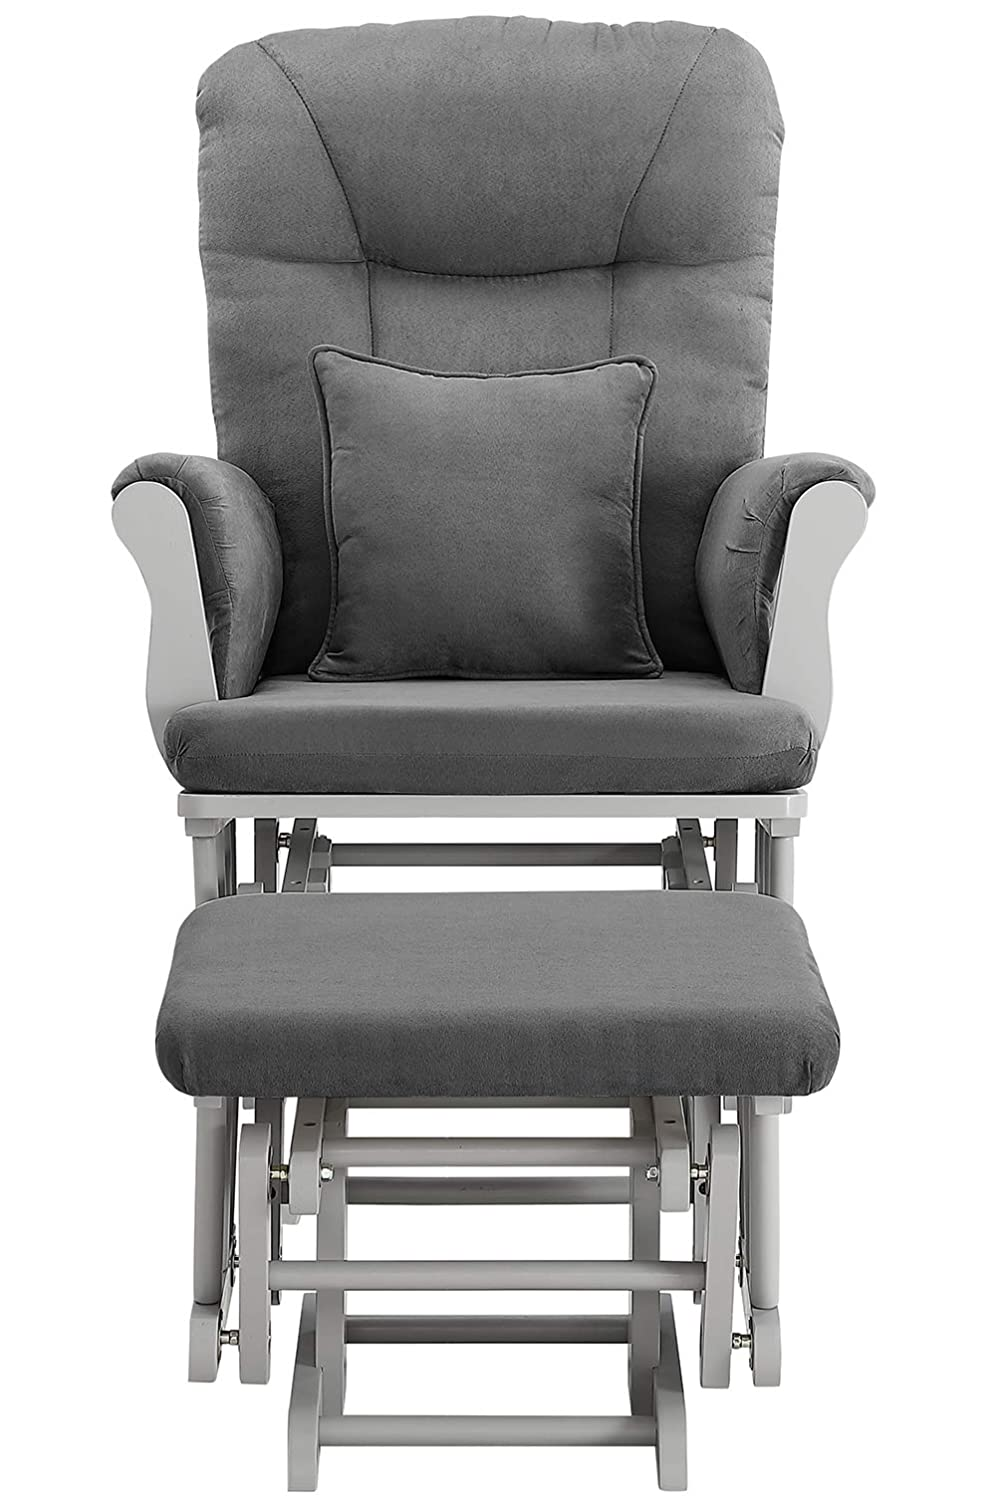 Angel Line Monterey Ii Glider Ottoman, Gray with Dark Gray Cushion